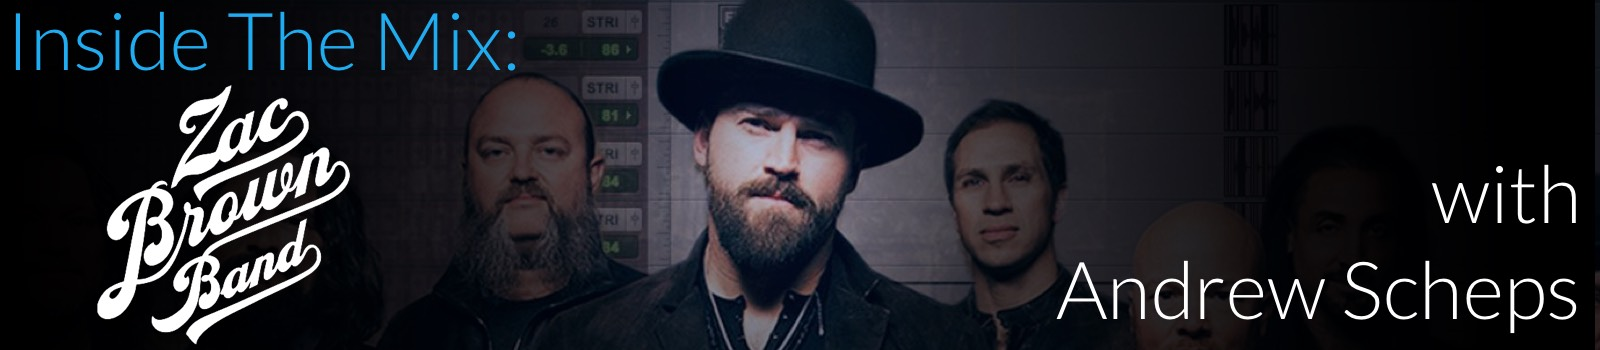 Inside The Mix: Zac Brown Band with Andrew Scheps, see how Andrew puts his touch on a mix